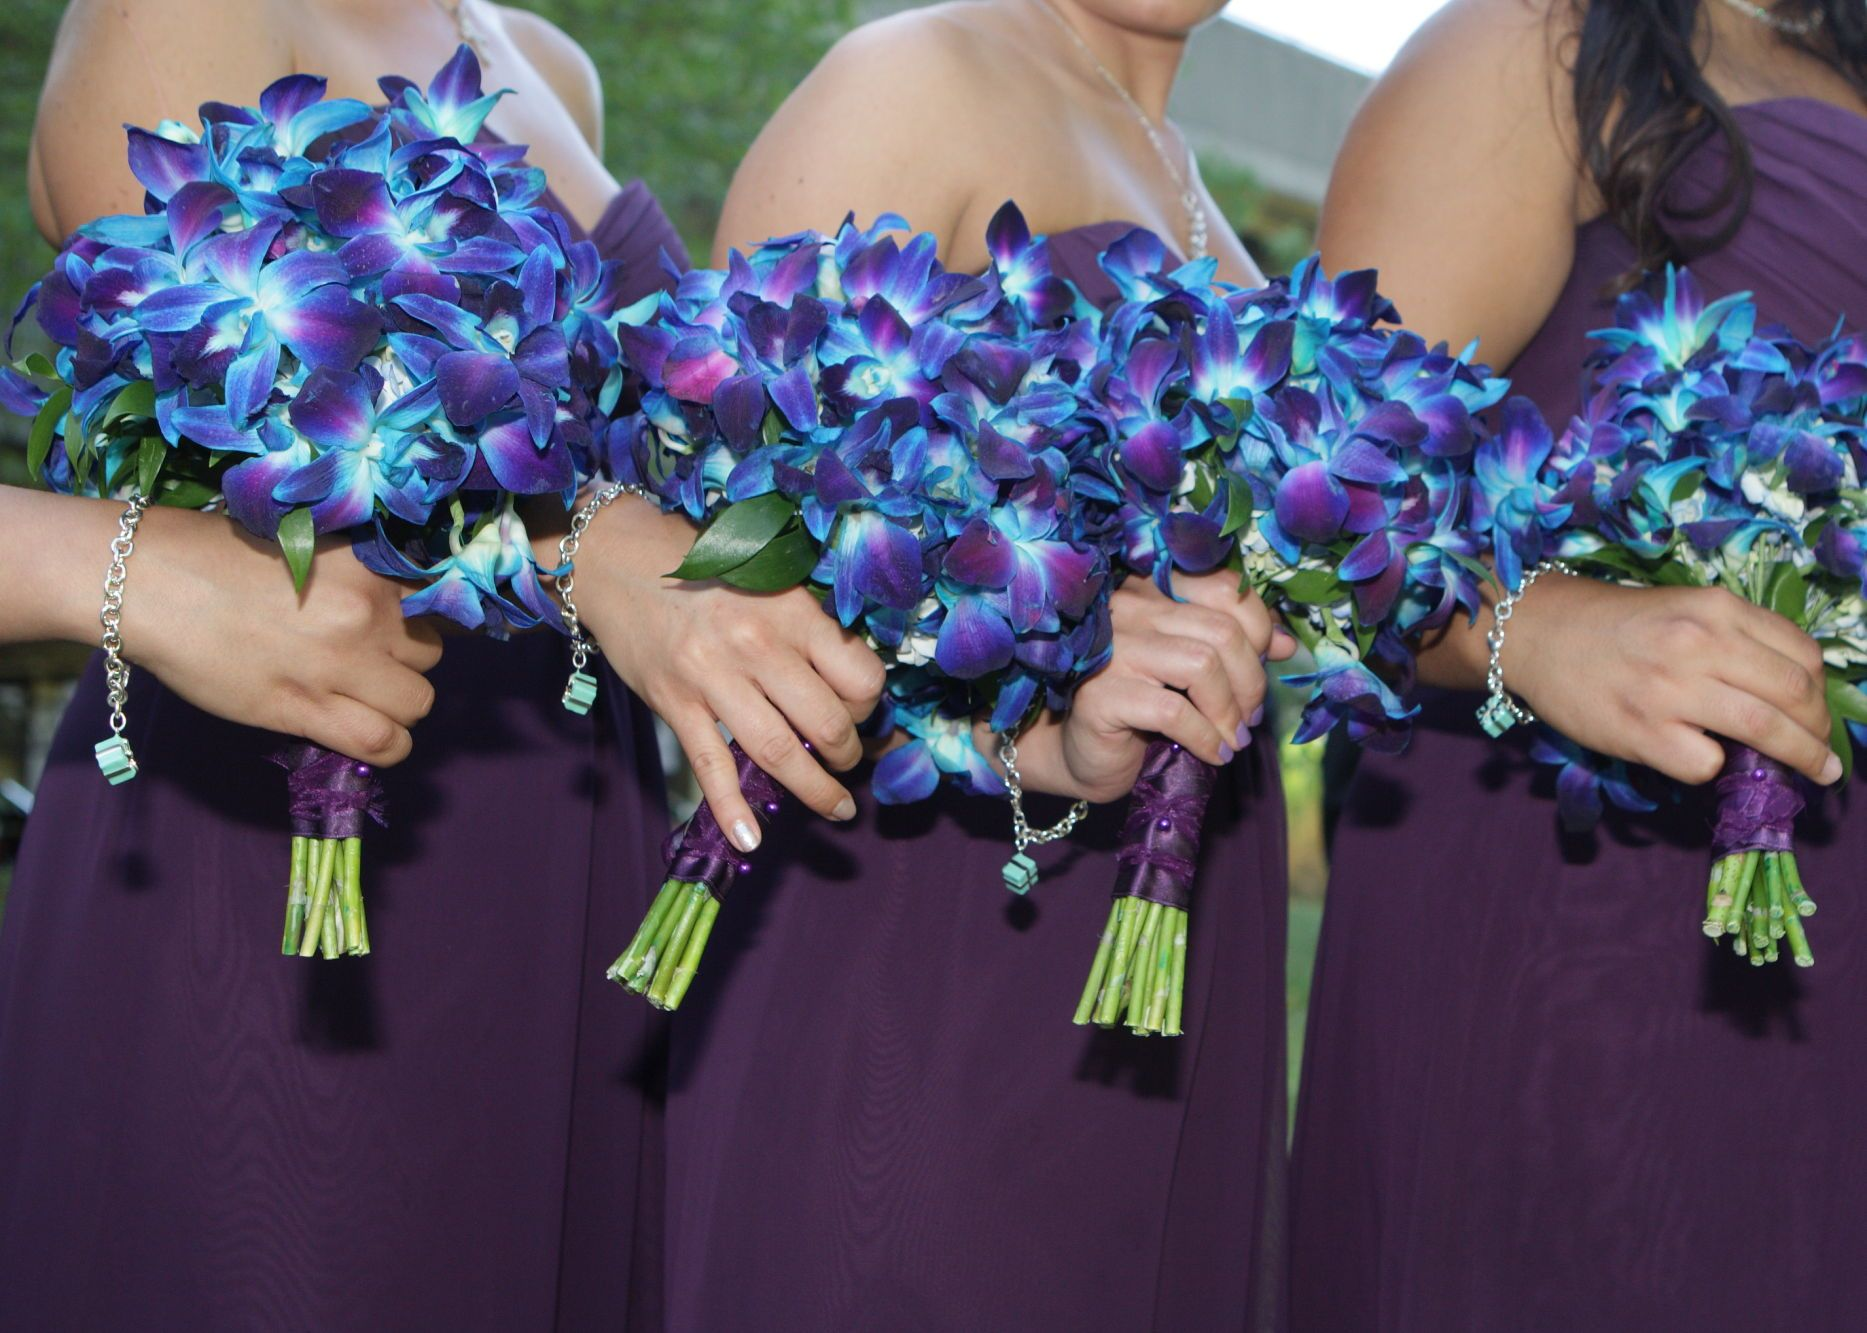 Pin By Tania Pucciarelli On My Wedding Purple Bridesmaid Bouquets Blue Orchid Wedding Bouquet Bridal Party Bouquets